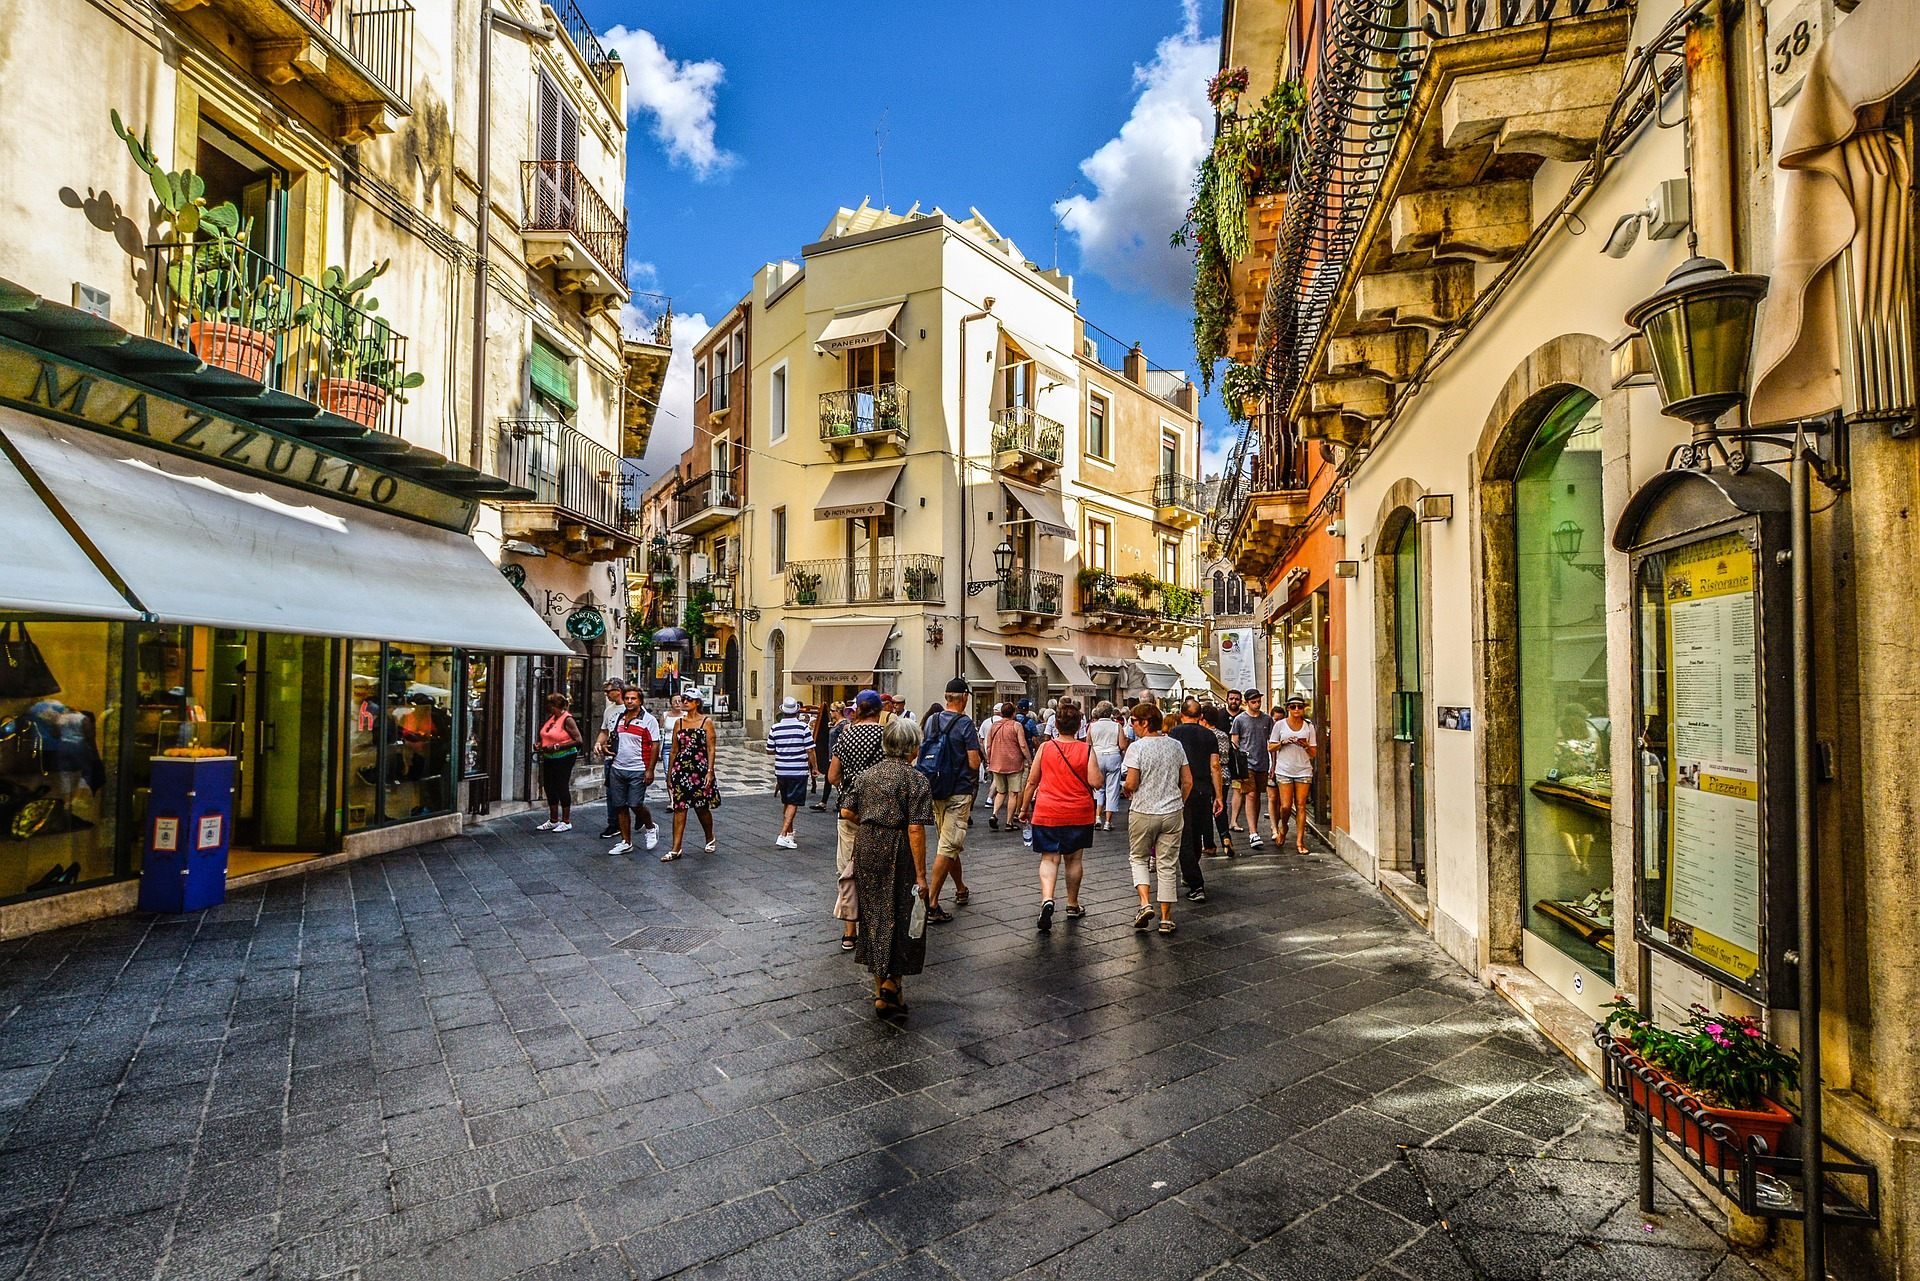 People shopping in Taormina in Sicily, Italy